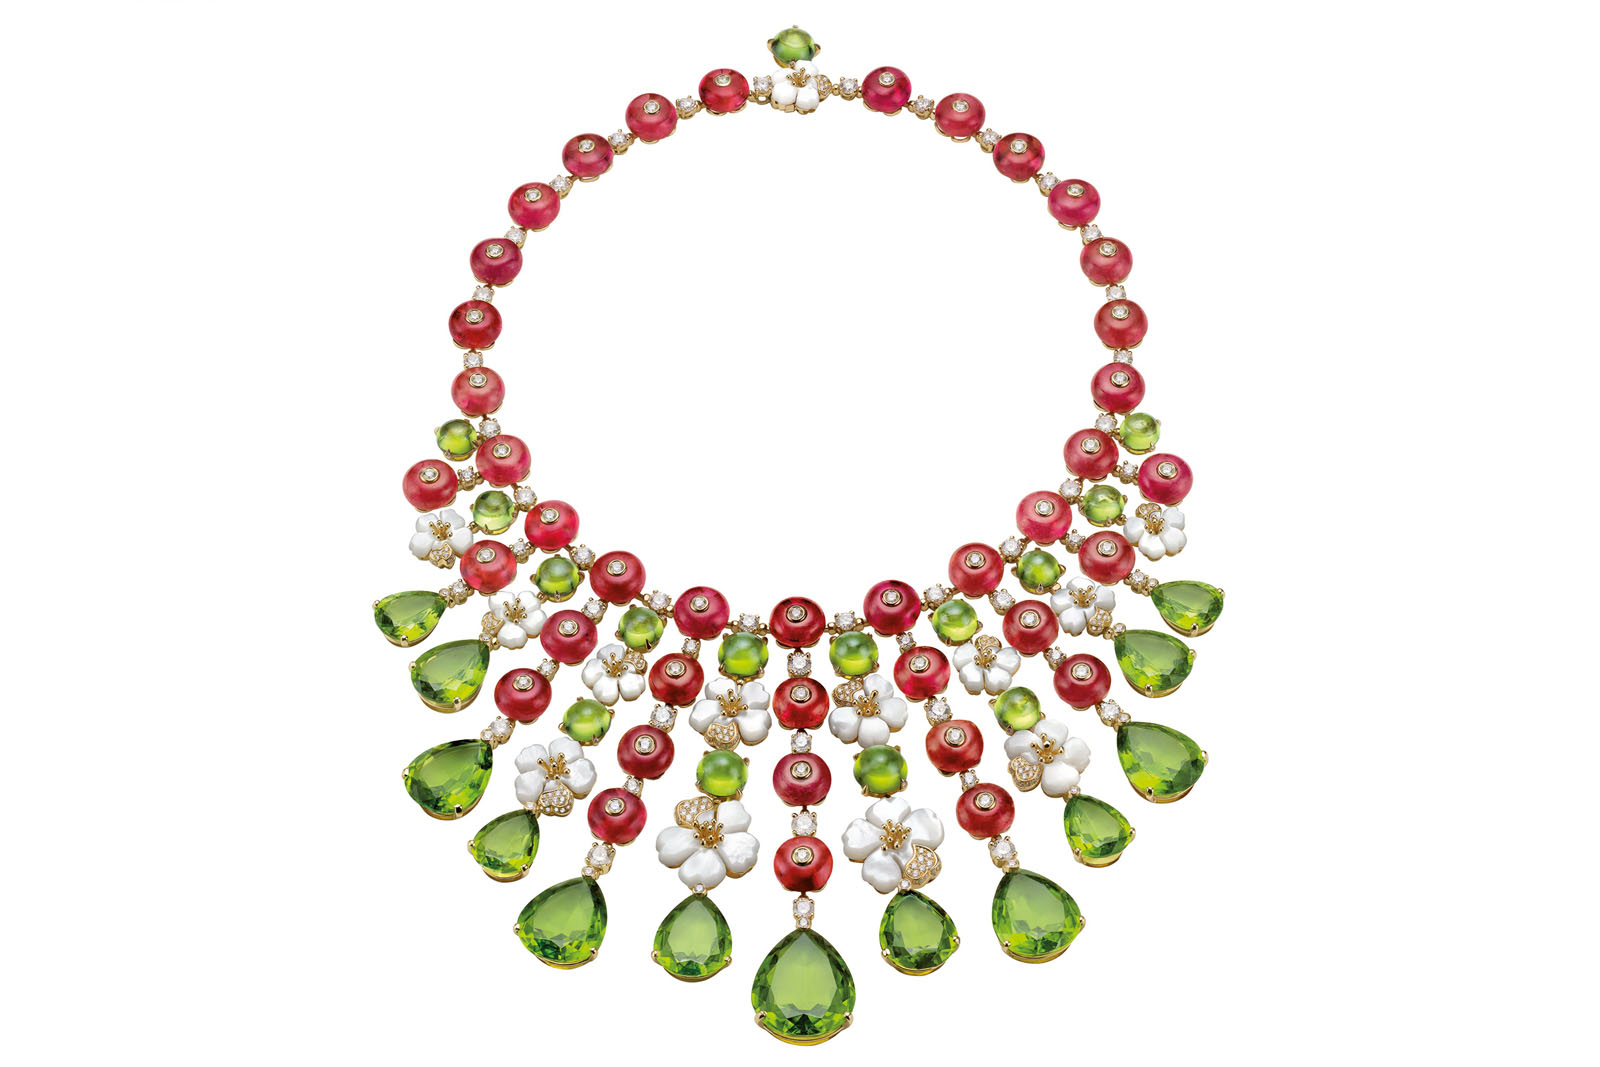 Bulgari's 'Giardini Italiani' necklace with peridot, mother of pearl, diamonds and rubies